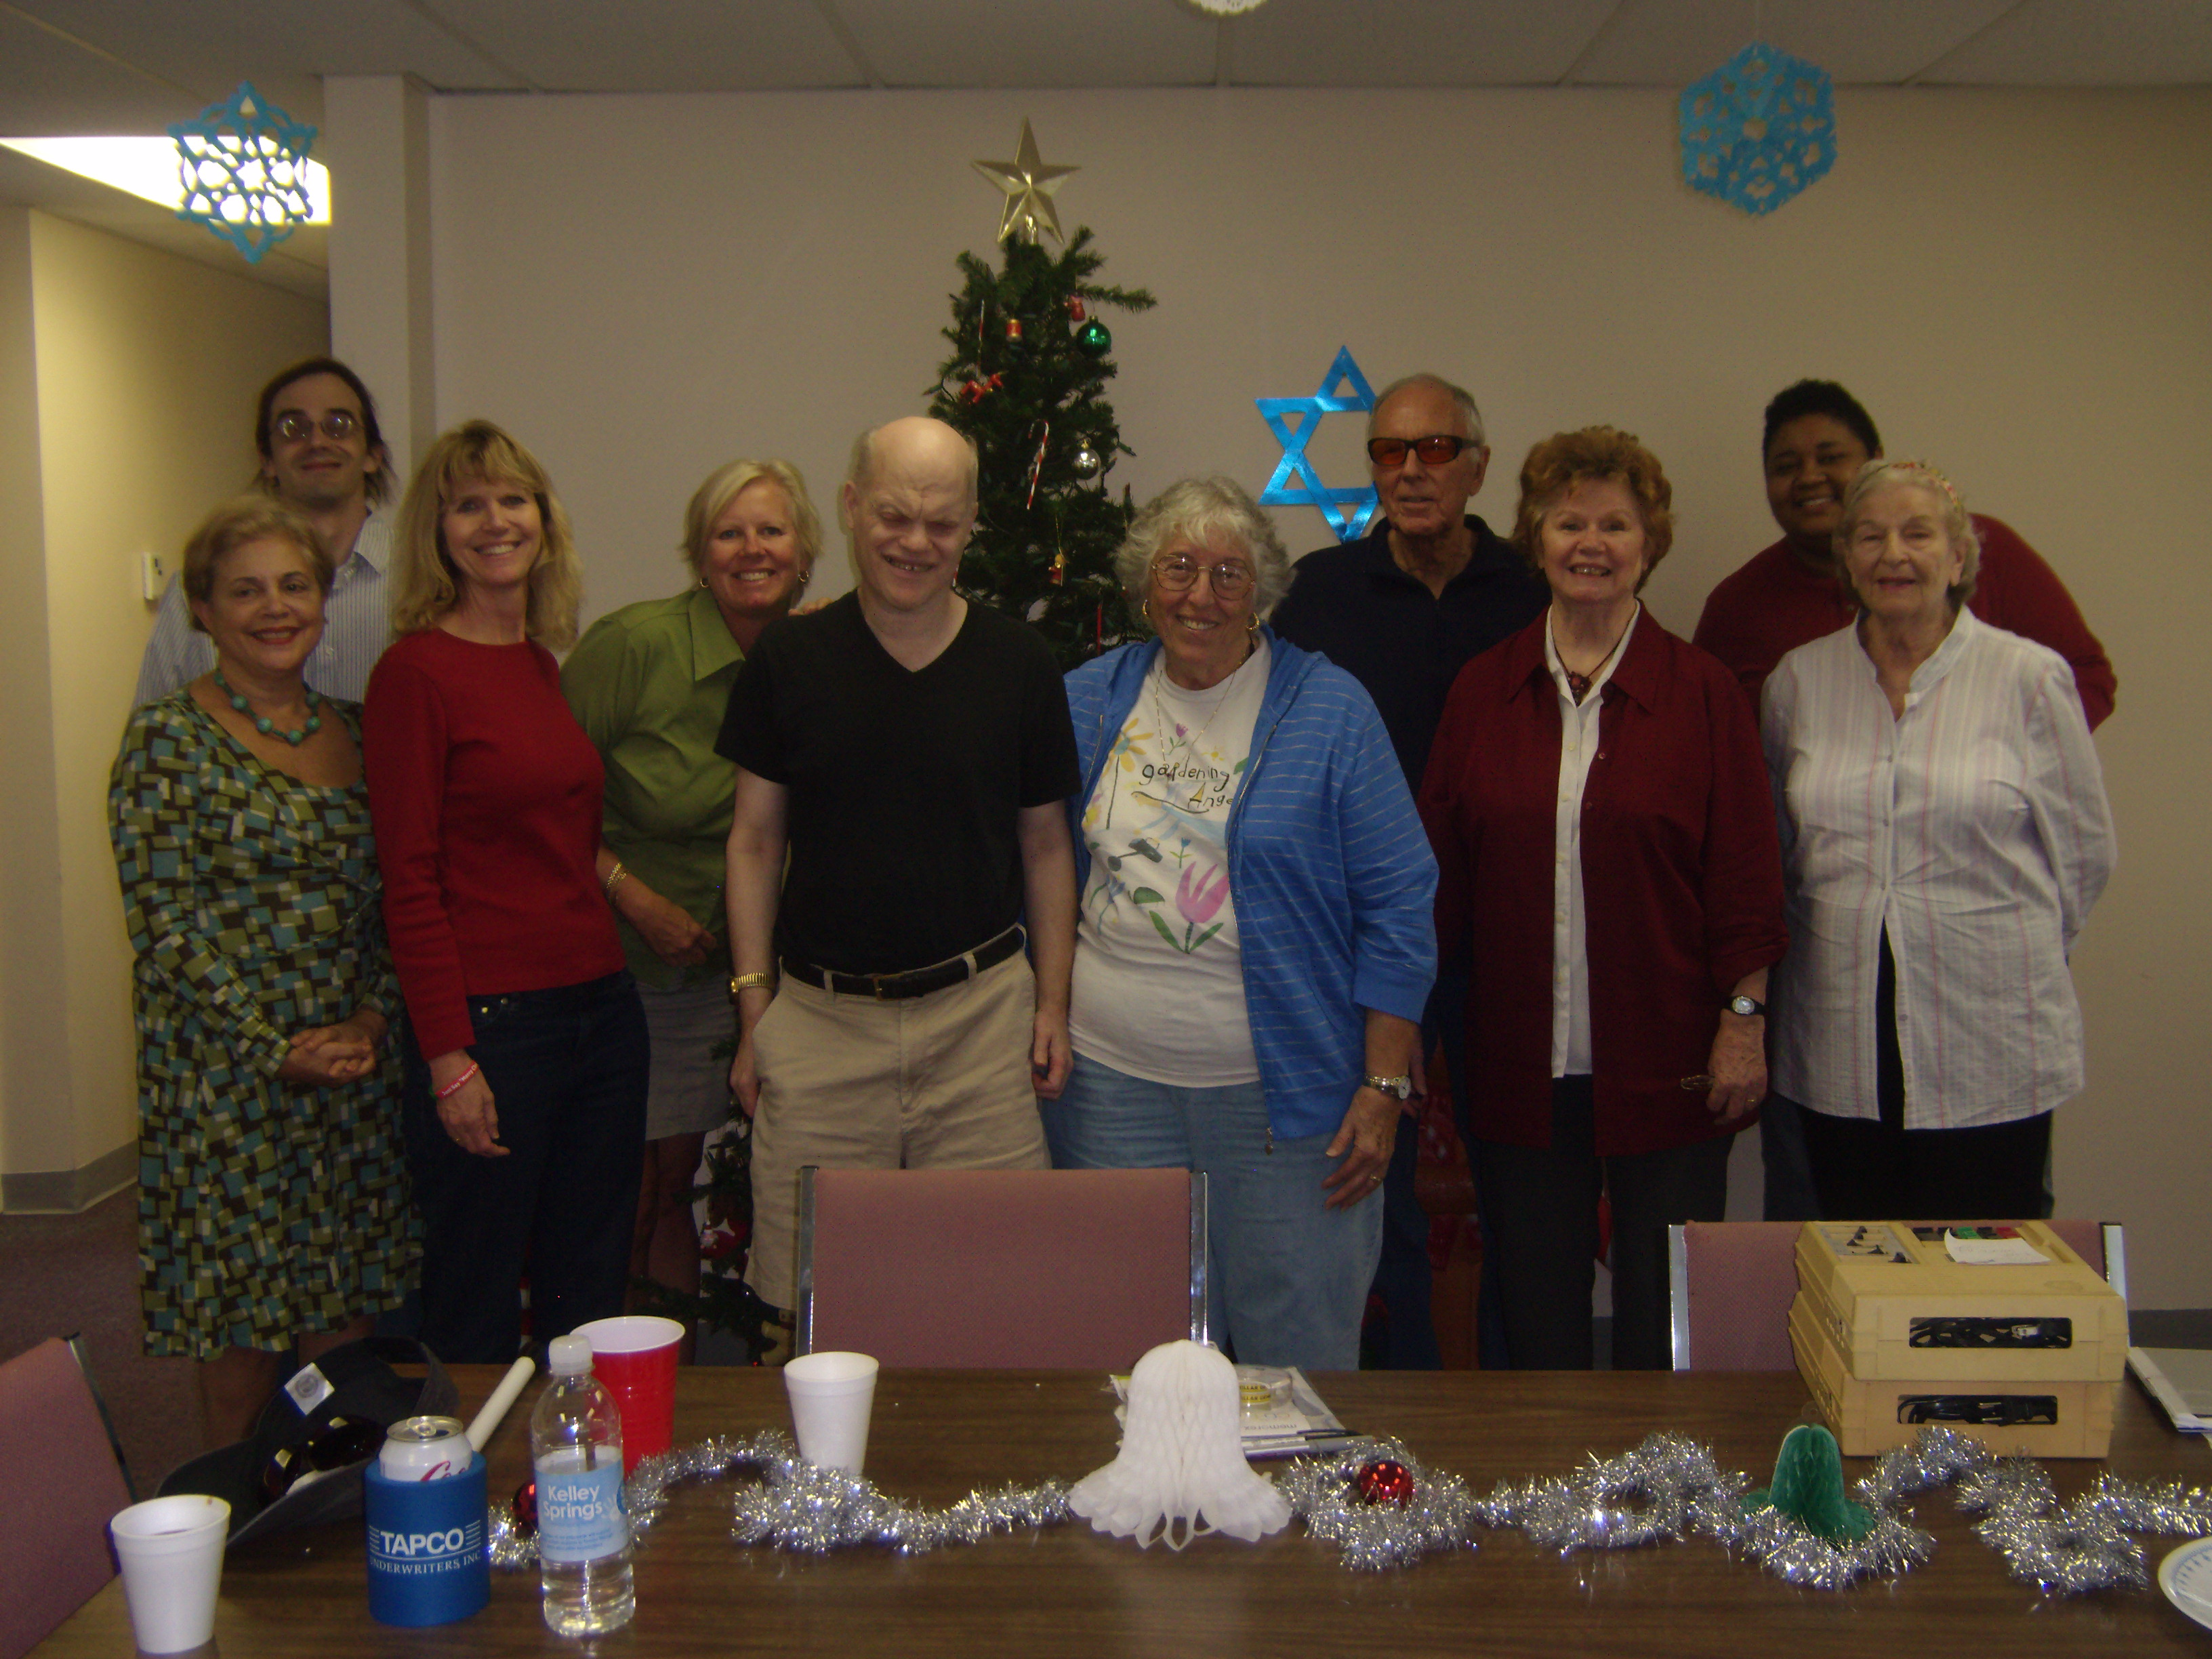 Book Club celebrates the winter holidays. Group photo of 10 Book Club members, including staff.